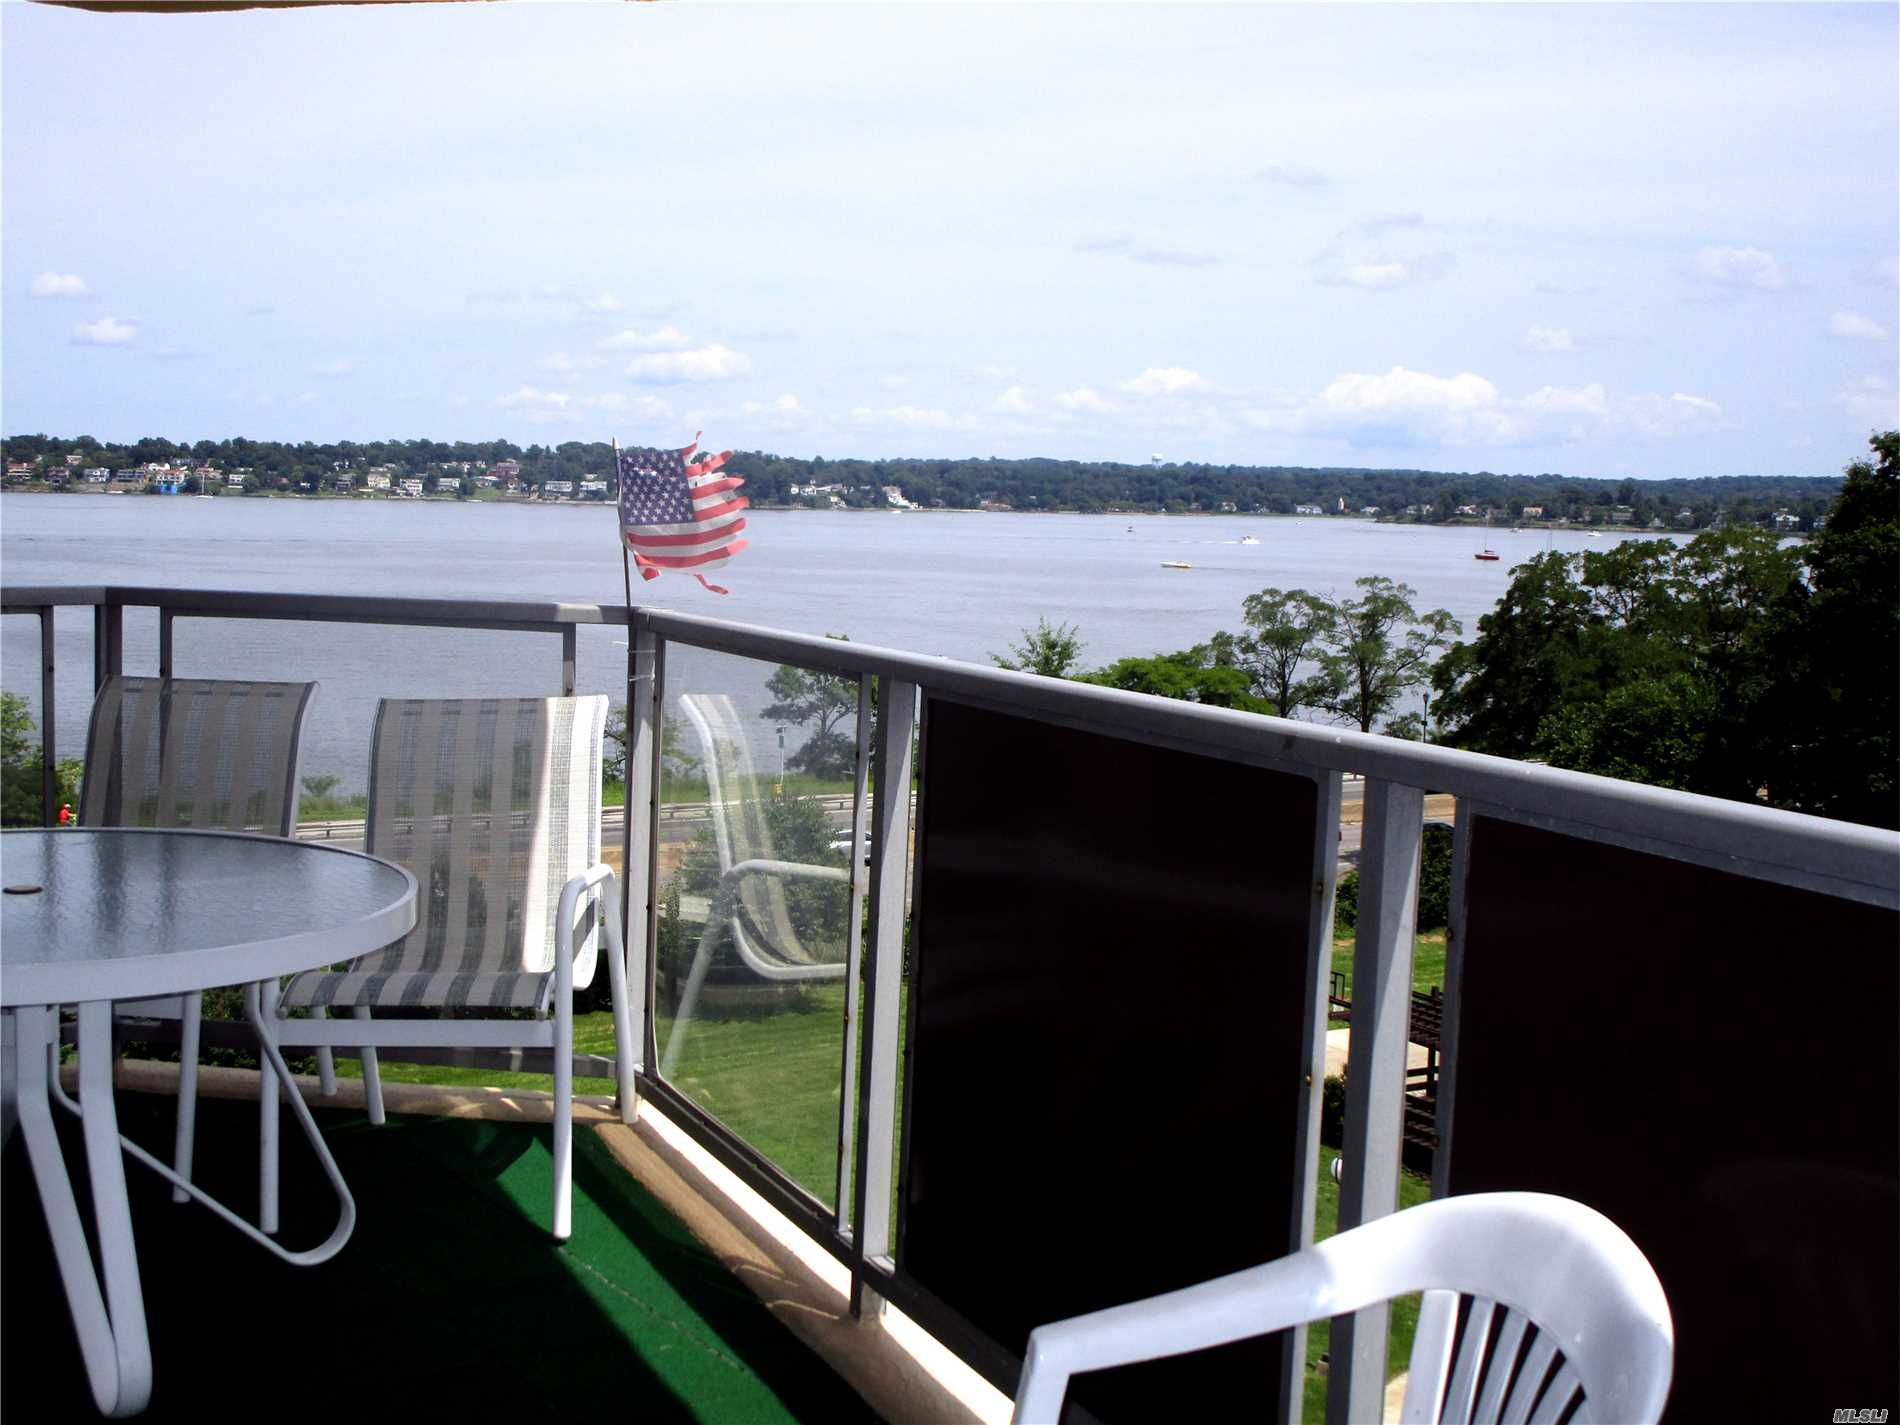 Corner 3 Bedroom Apt In Luxury Doorman Bldg,  Kitchen, Formal Dining Rm., 2 Baths, Wood Flrs, ,  2 Terraces W/ Spectacular Water Views Of Little Neck Bay, . Cac, 24 Hr Doorman, Shopping Arcade On Site W/ Restaurant/Deli/Grocery Store. Beauty Spa, , Pool, Gym, Tennis & Party Rm. Close To All Shopping And Transportation. Total Maint. Including Taxes $2, 063.91 W/O Garage                                        .                   Dogs R Welcome